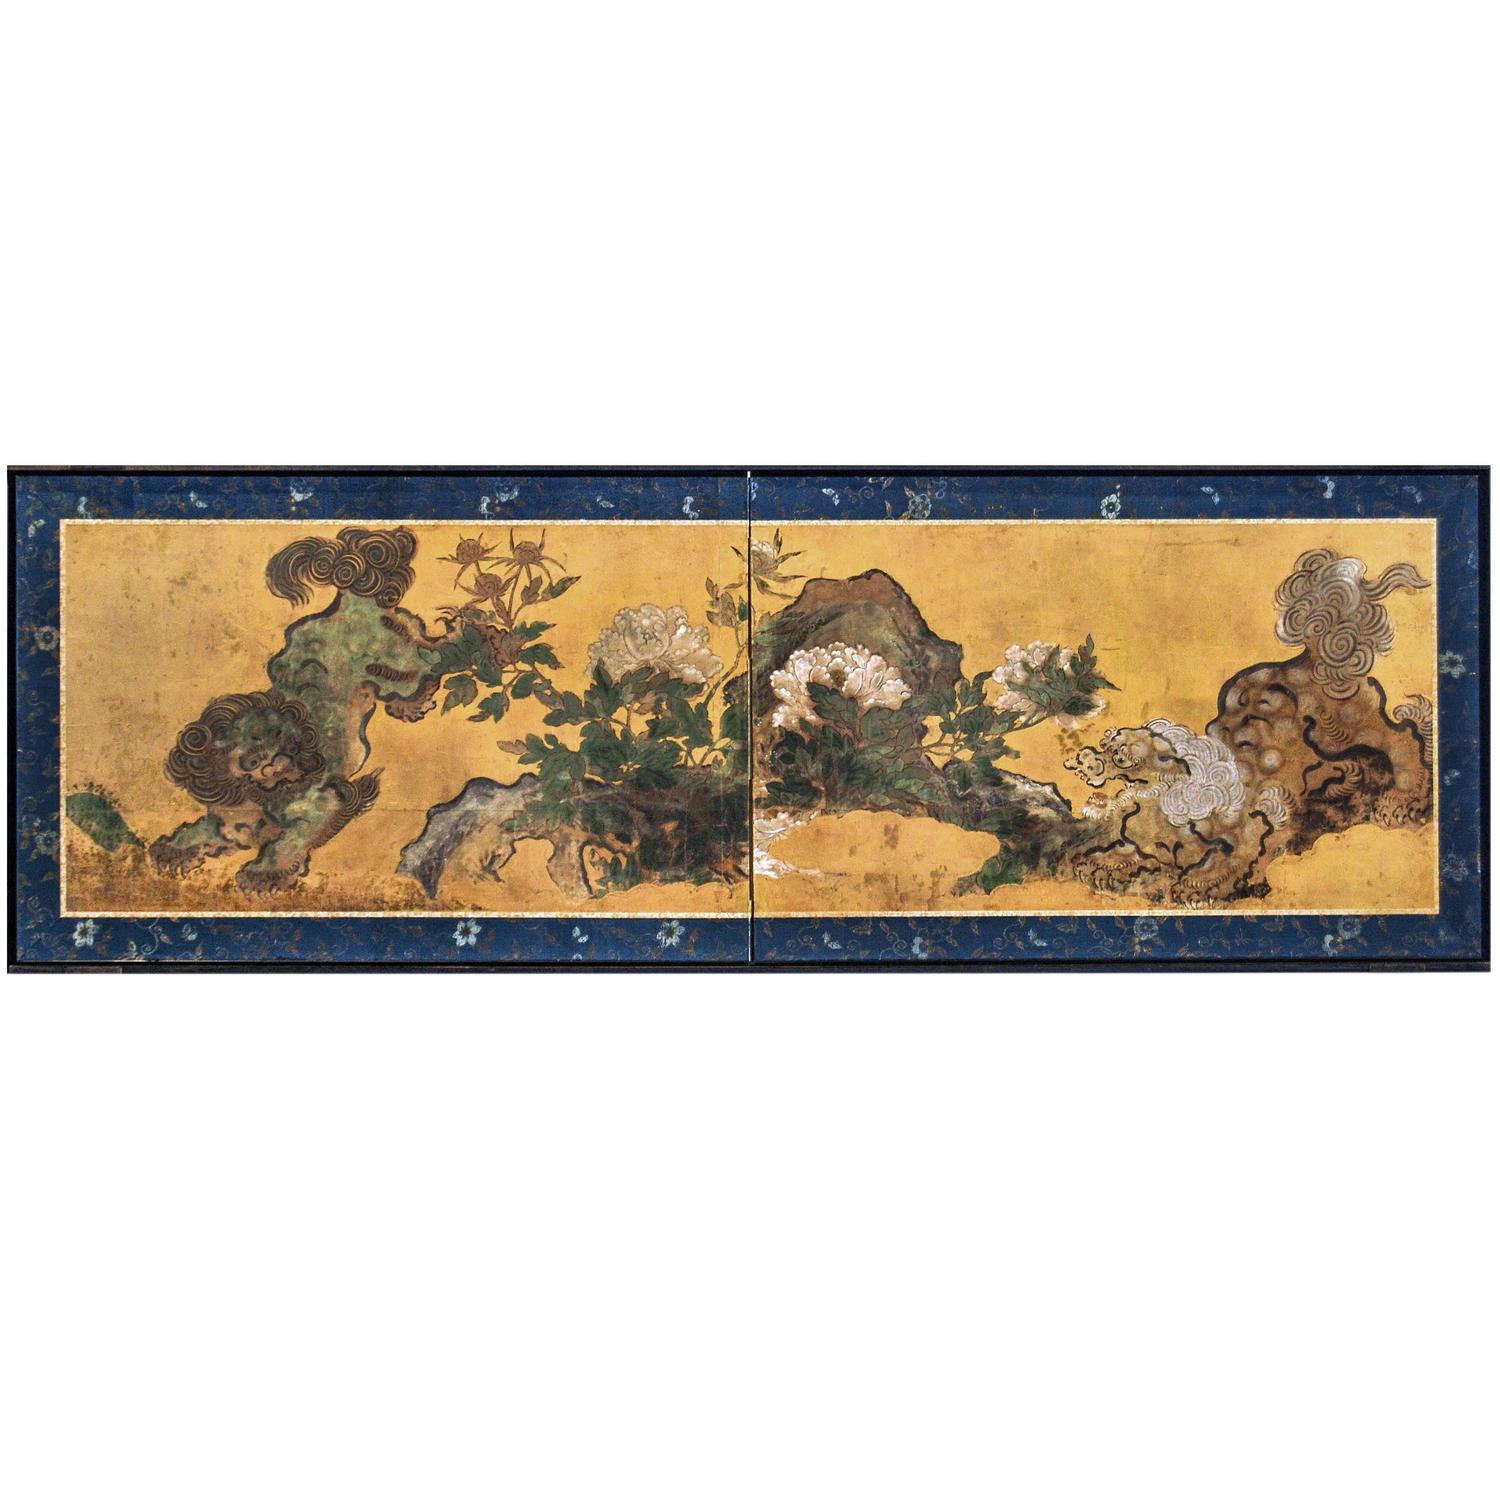 Antique japanese screens for sale - Antique Japanese Two Panel Karashishi Screen Edo Period Circa 17th Century